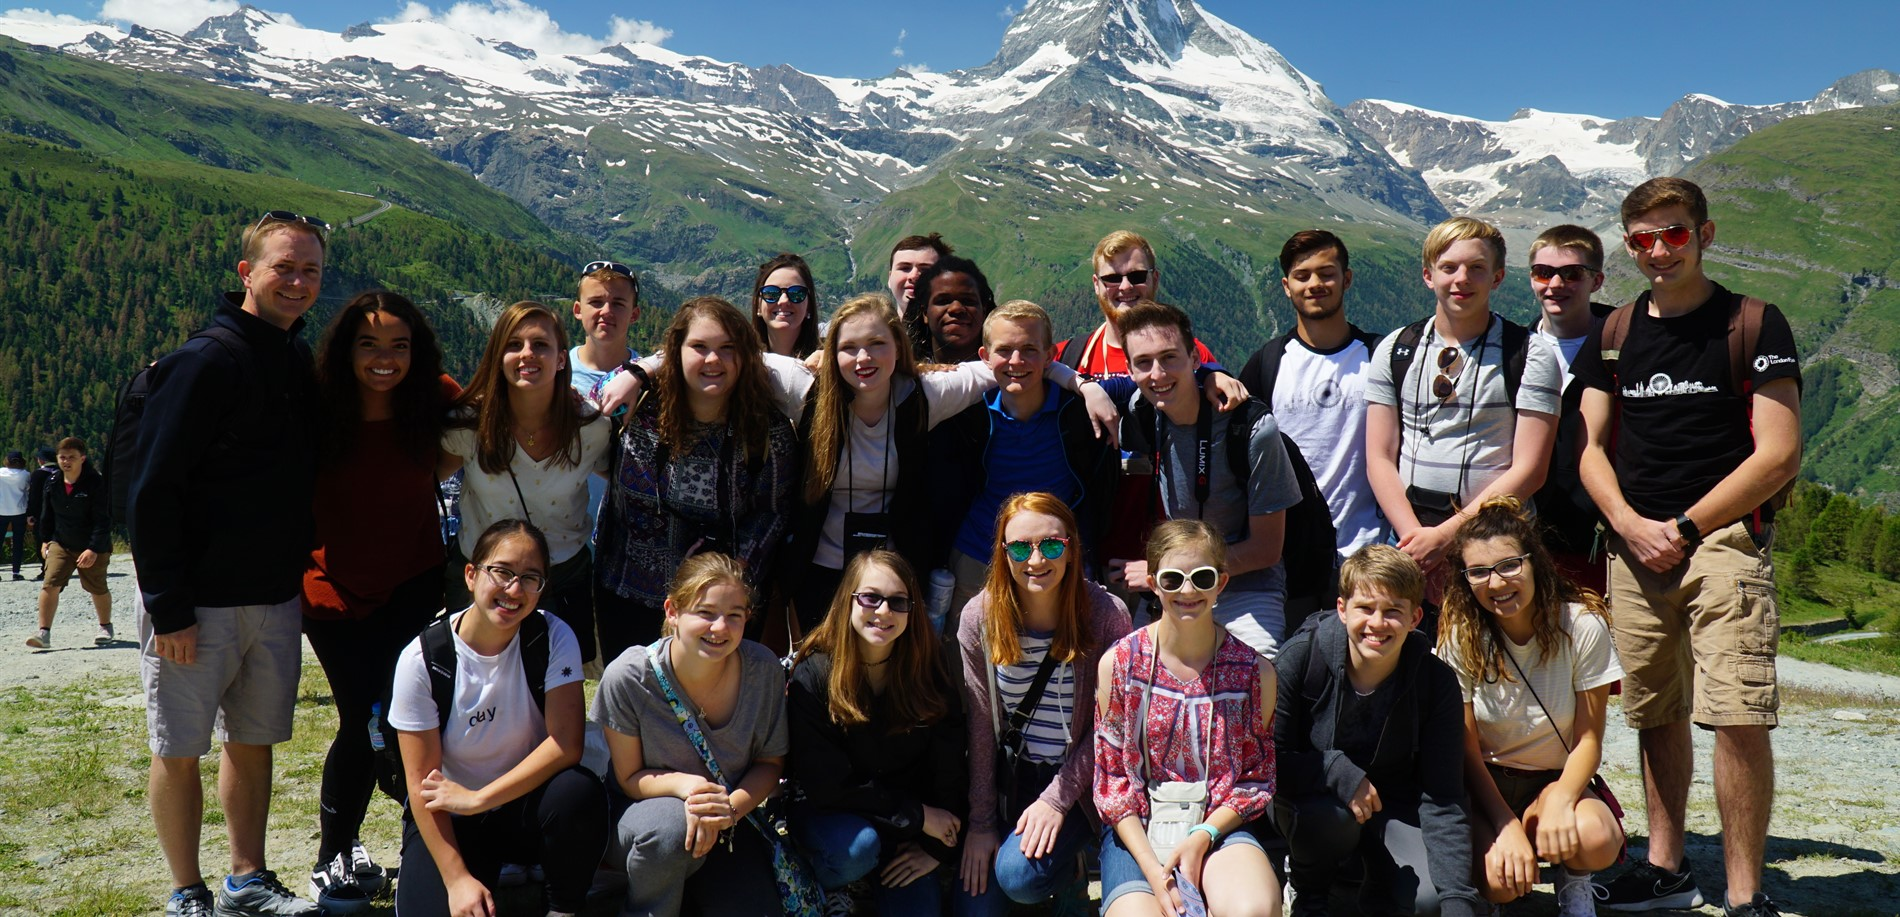 CHHS Band Students in Switzerland for the 2018 KY Ambassadors of Music European Tour